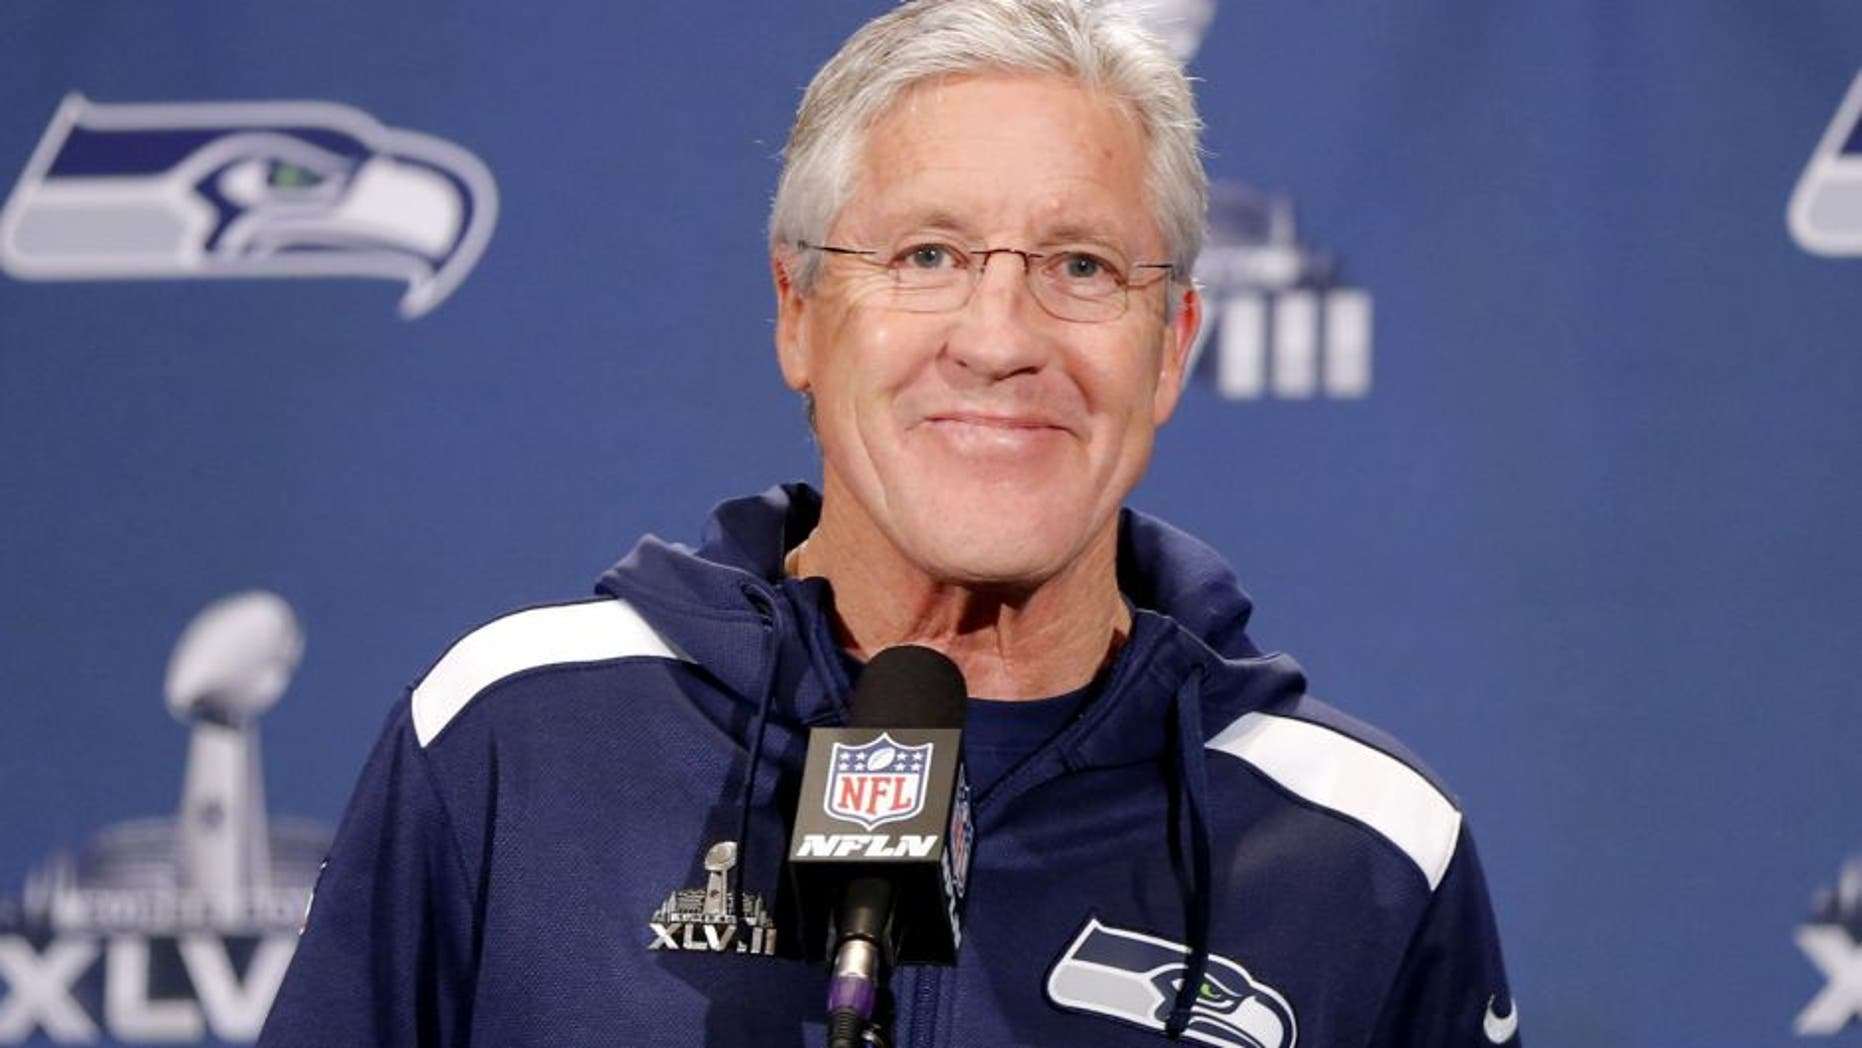 Jan 27, 2014; Jersey City, NJ, USA; Seattle Seahawks head coach Pete Carroll addresses the media during a press conference for Super Bowl XLVIII at The Westin. Mandatory Credit: Jim O'Connor-USA TODAY Sports